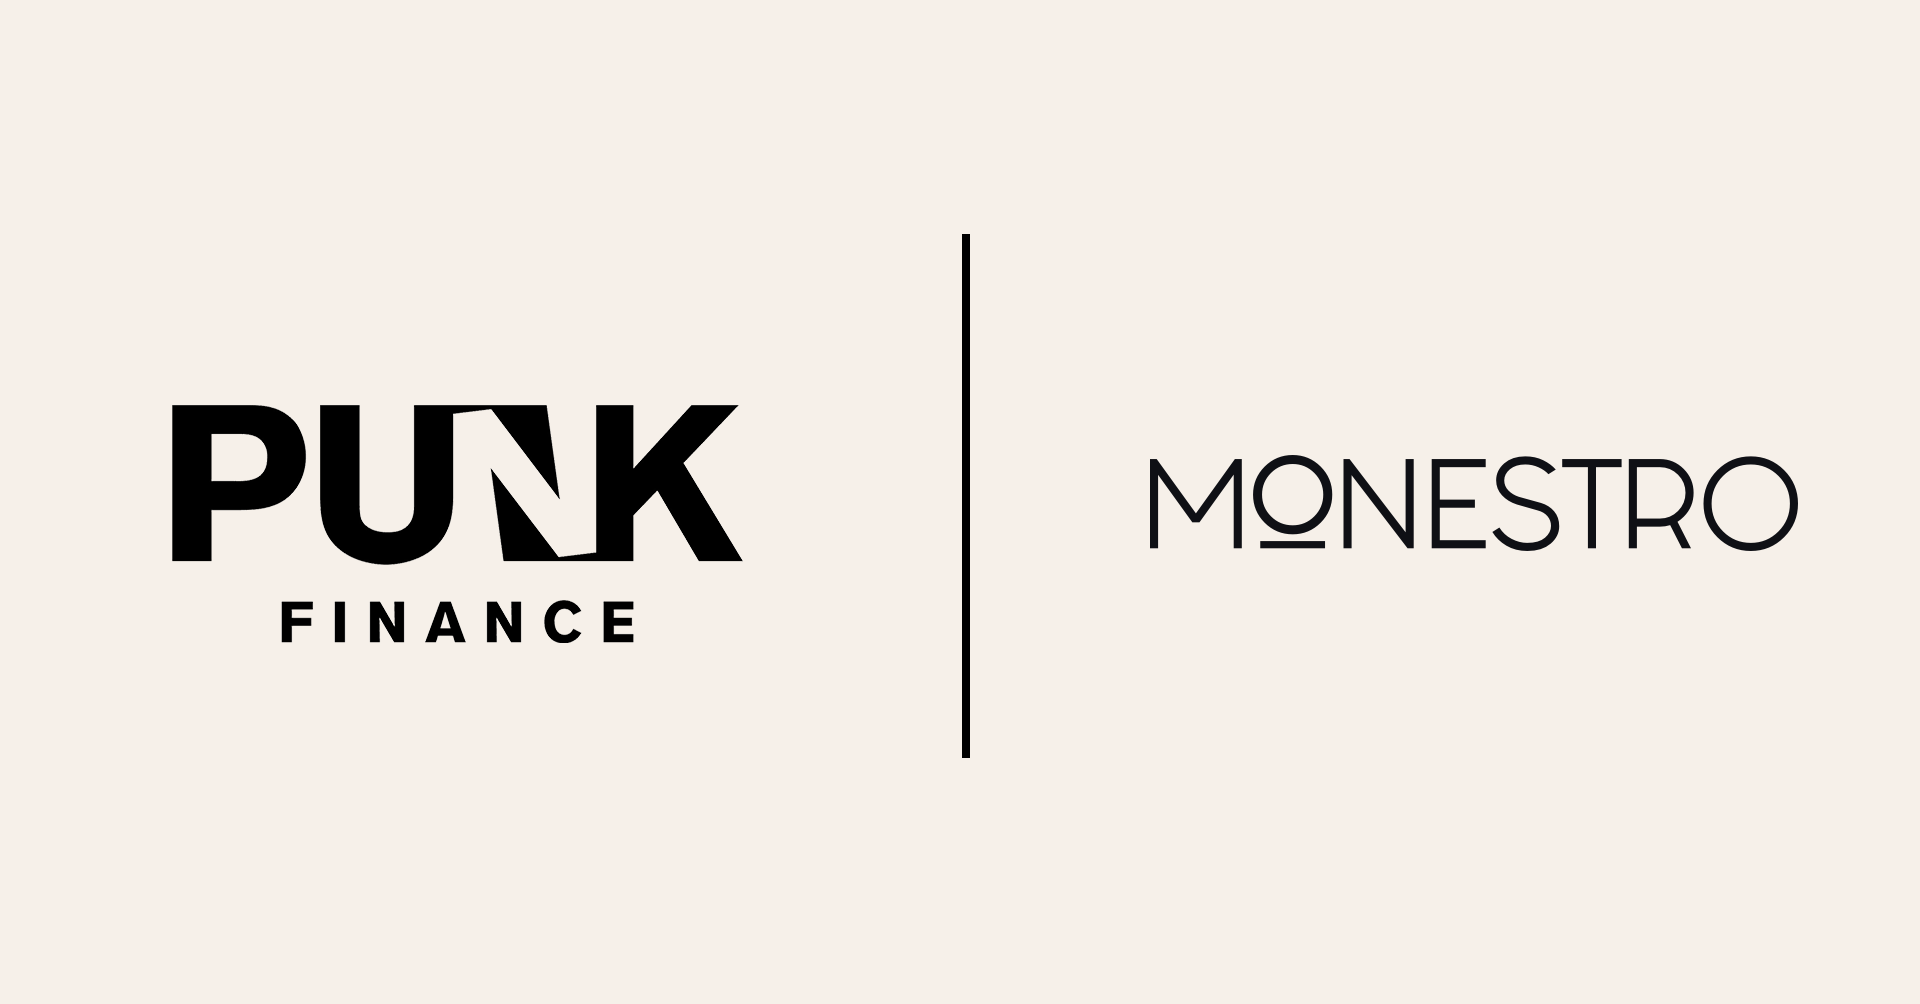 Punk Finance Lithuanian loans are now available for investments